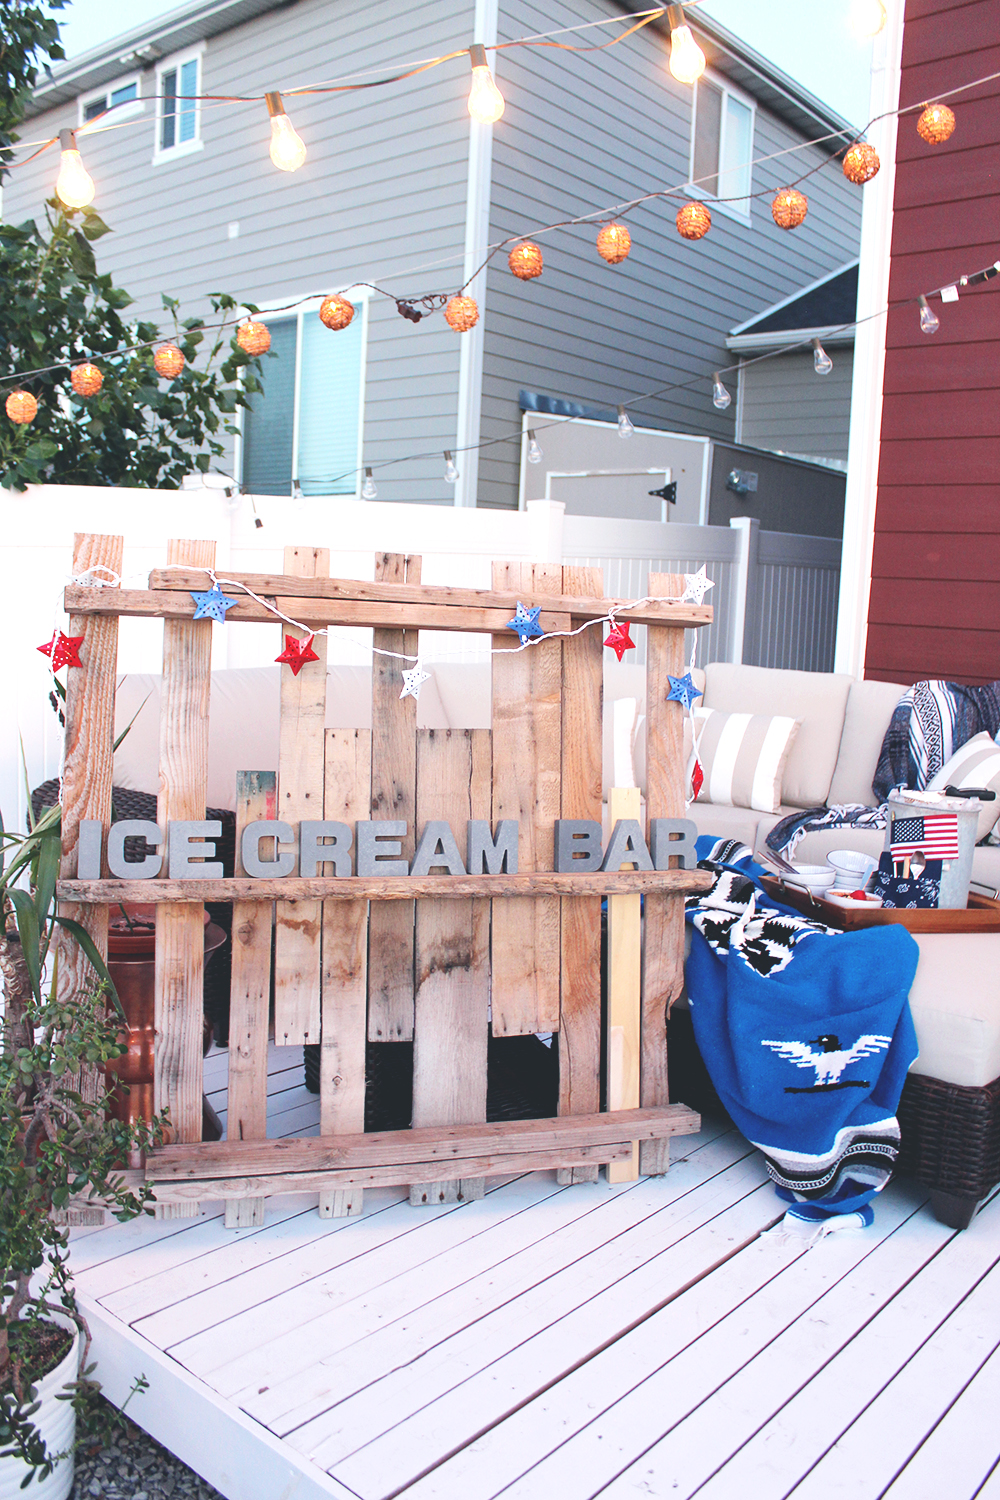 summer in style outdoor edition 4th of july ice cream bar